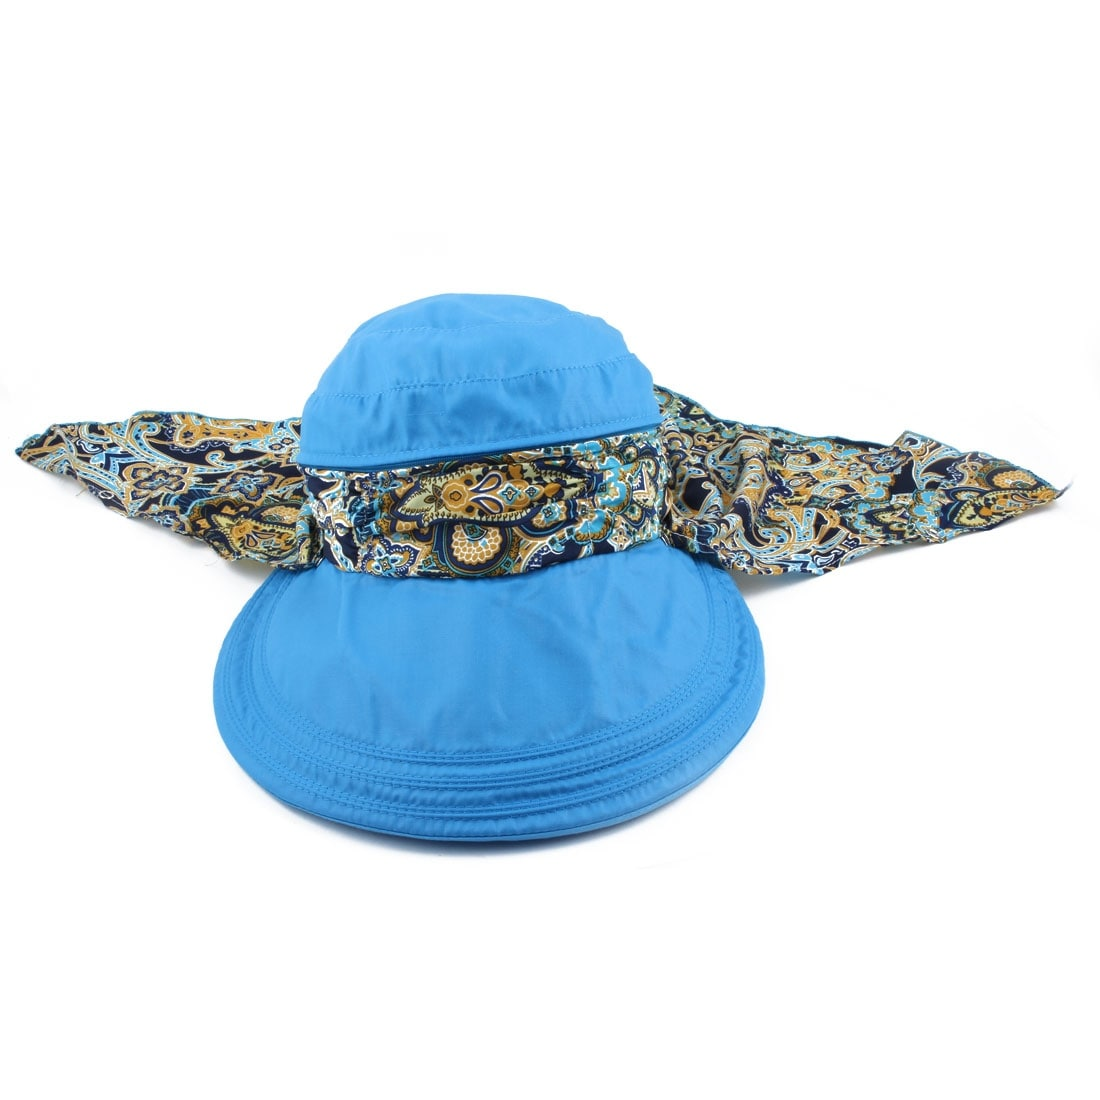 Ladies Cotton Blends Adjustable Floppy Wide Brim Summer Sun Cap Beach Hat  Blue 132b07cdff2f